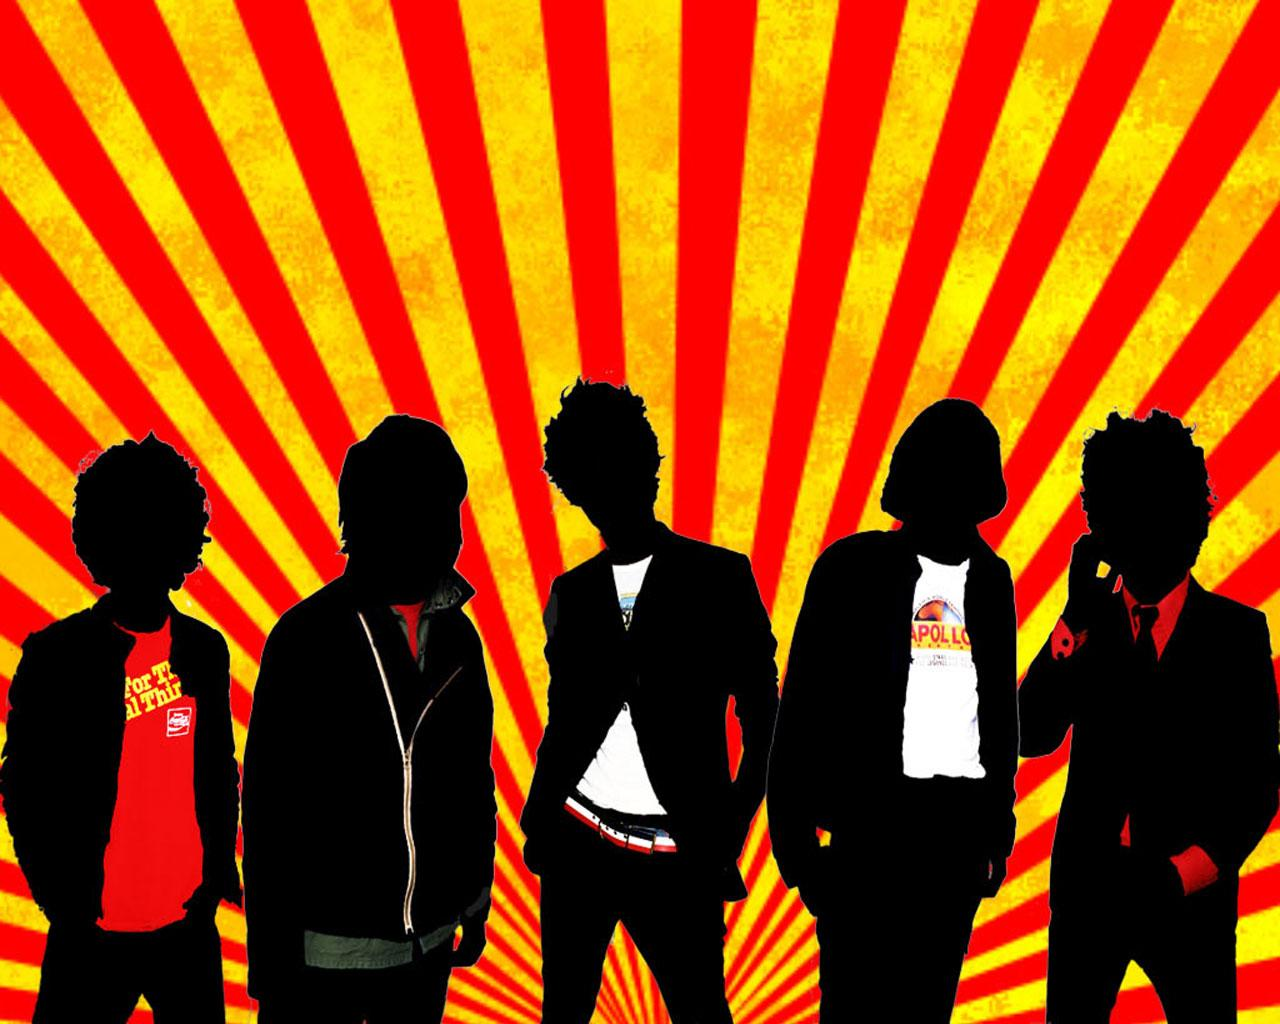 Best band the strokes 1280x1024 wallpaper 3 the strokes wallpaper 3 1280 x 1024 thecheapjerseys Images